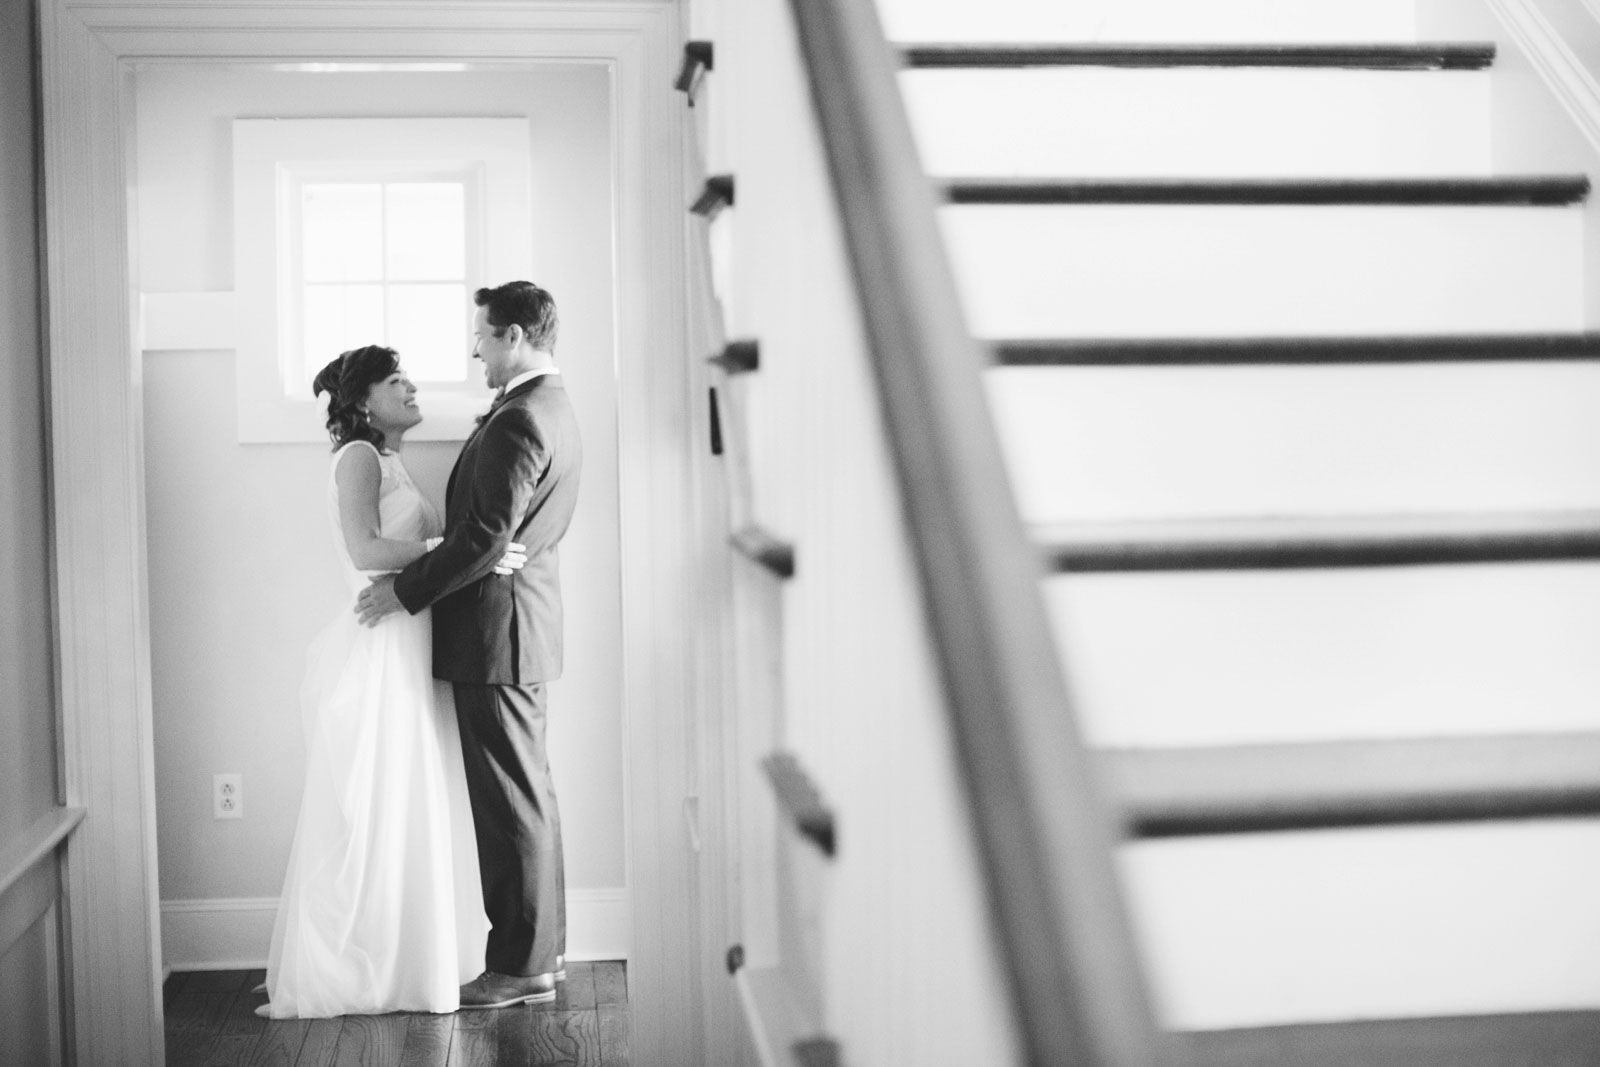 bride and groom smiling and talking to each other during first look by staircase, natural light